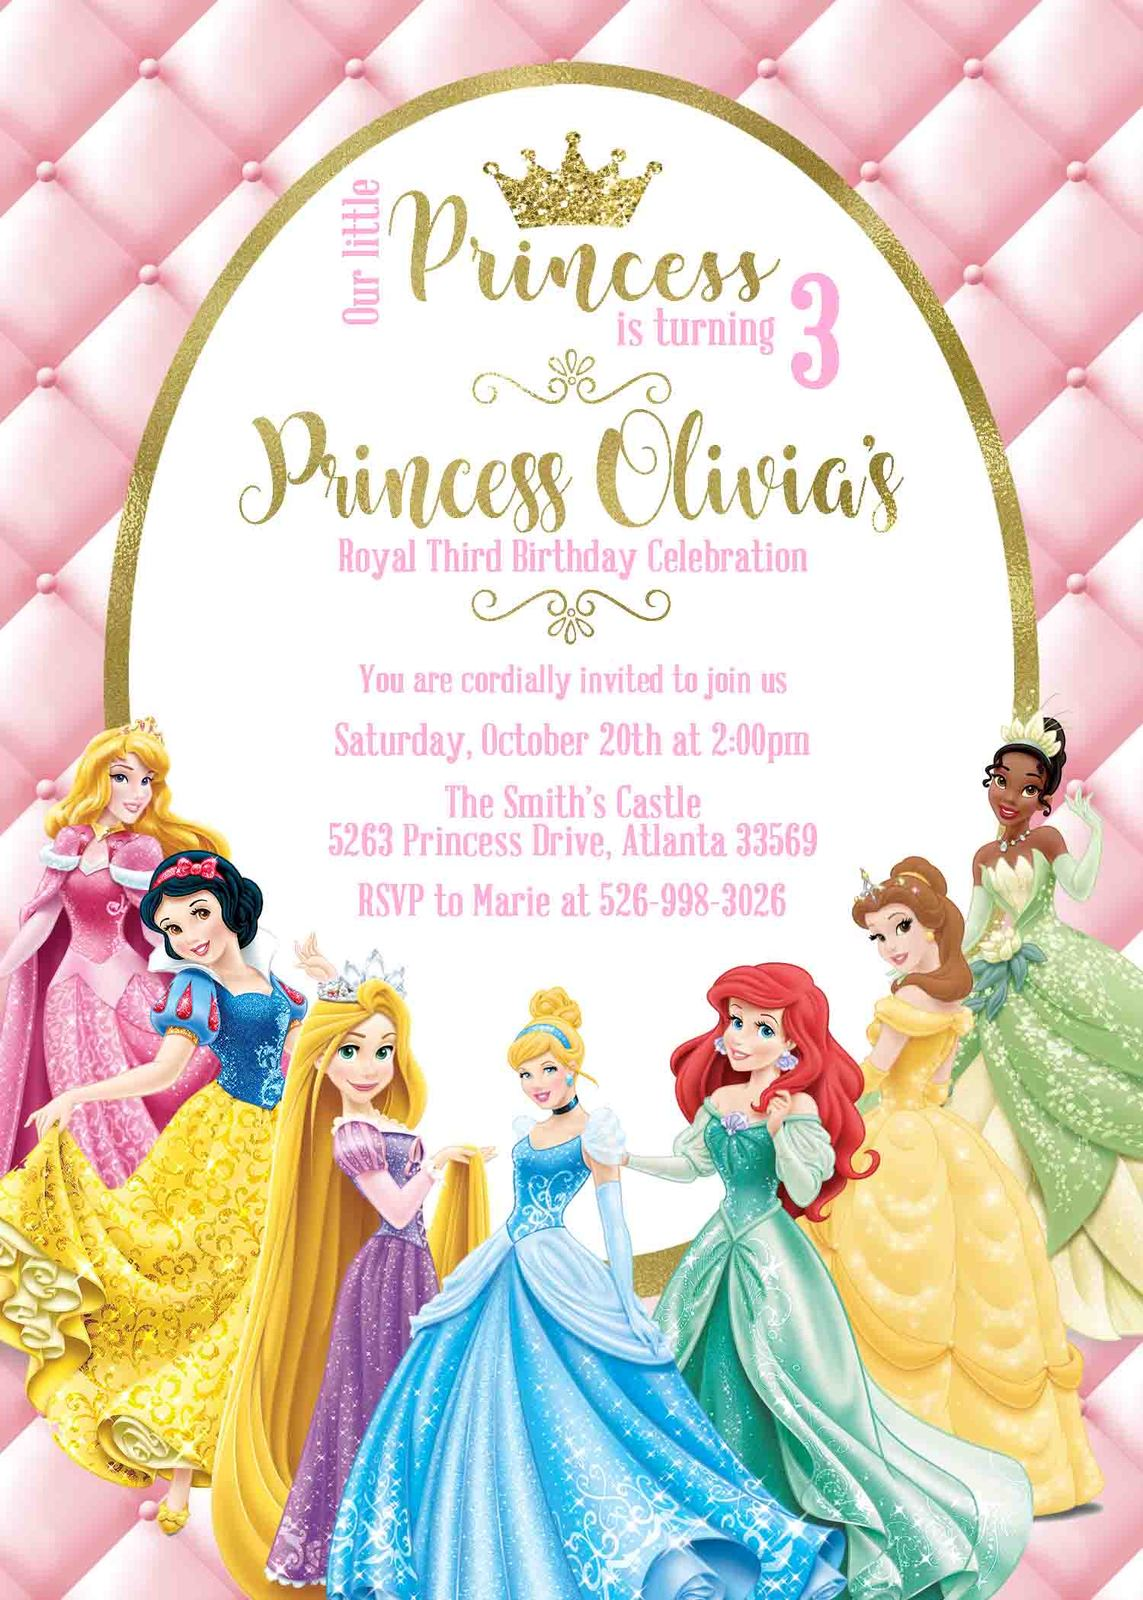 Princess birthday invitation disney princess and 47 similar items princess birthday invitation filmwisefo